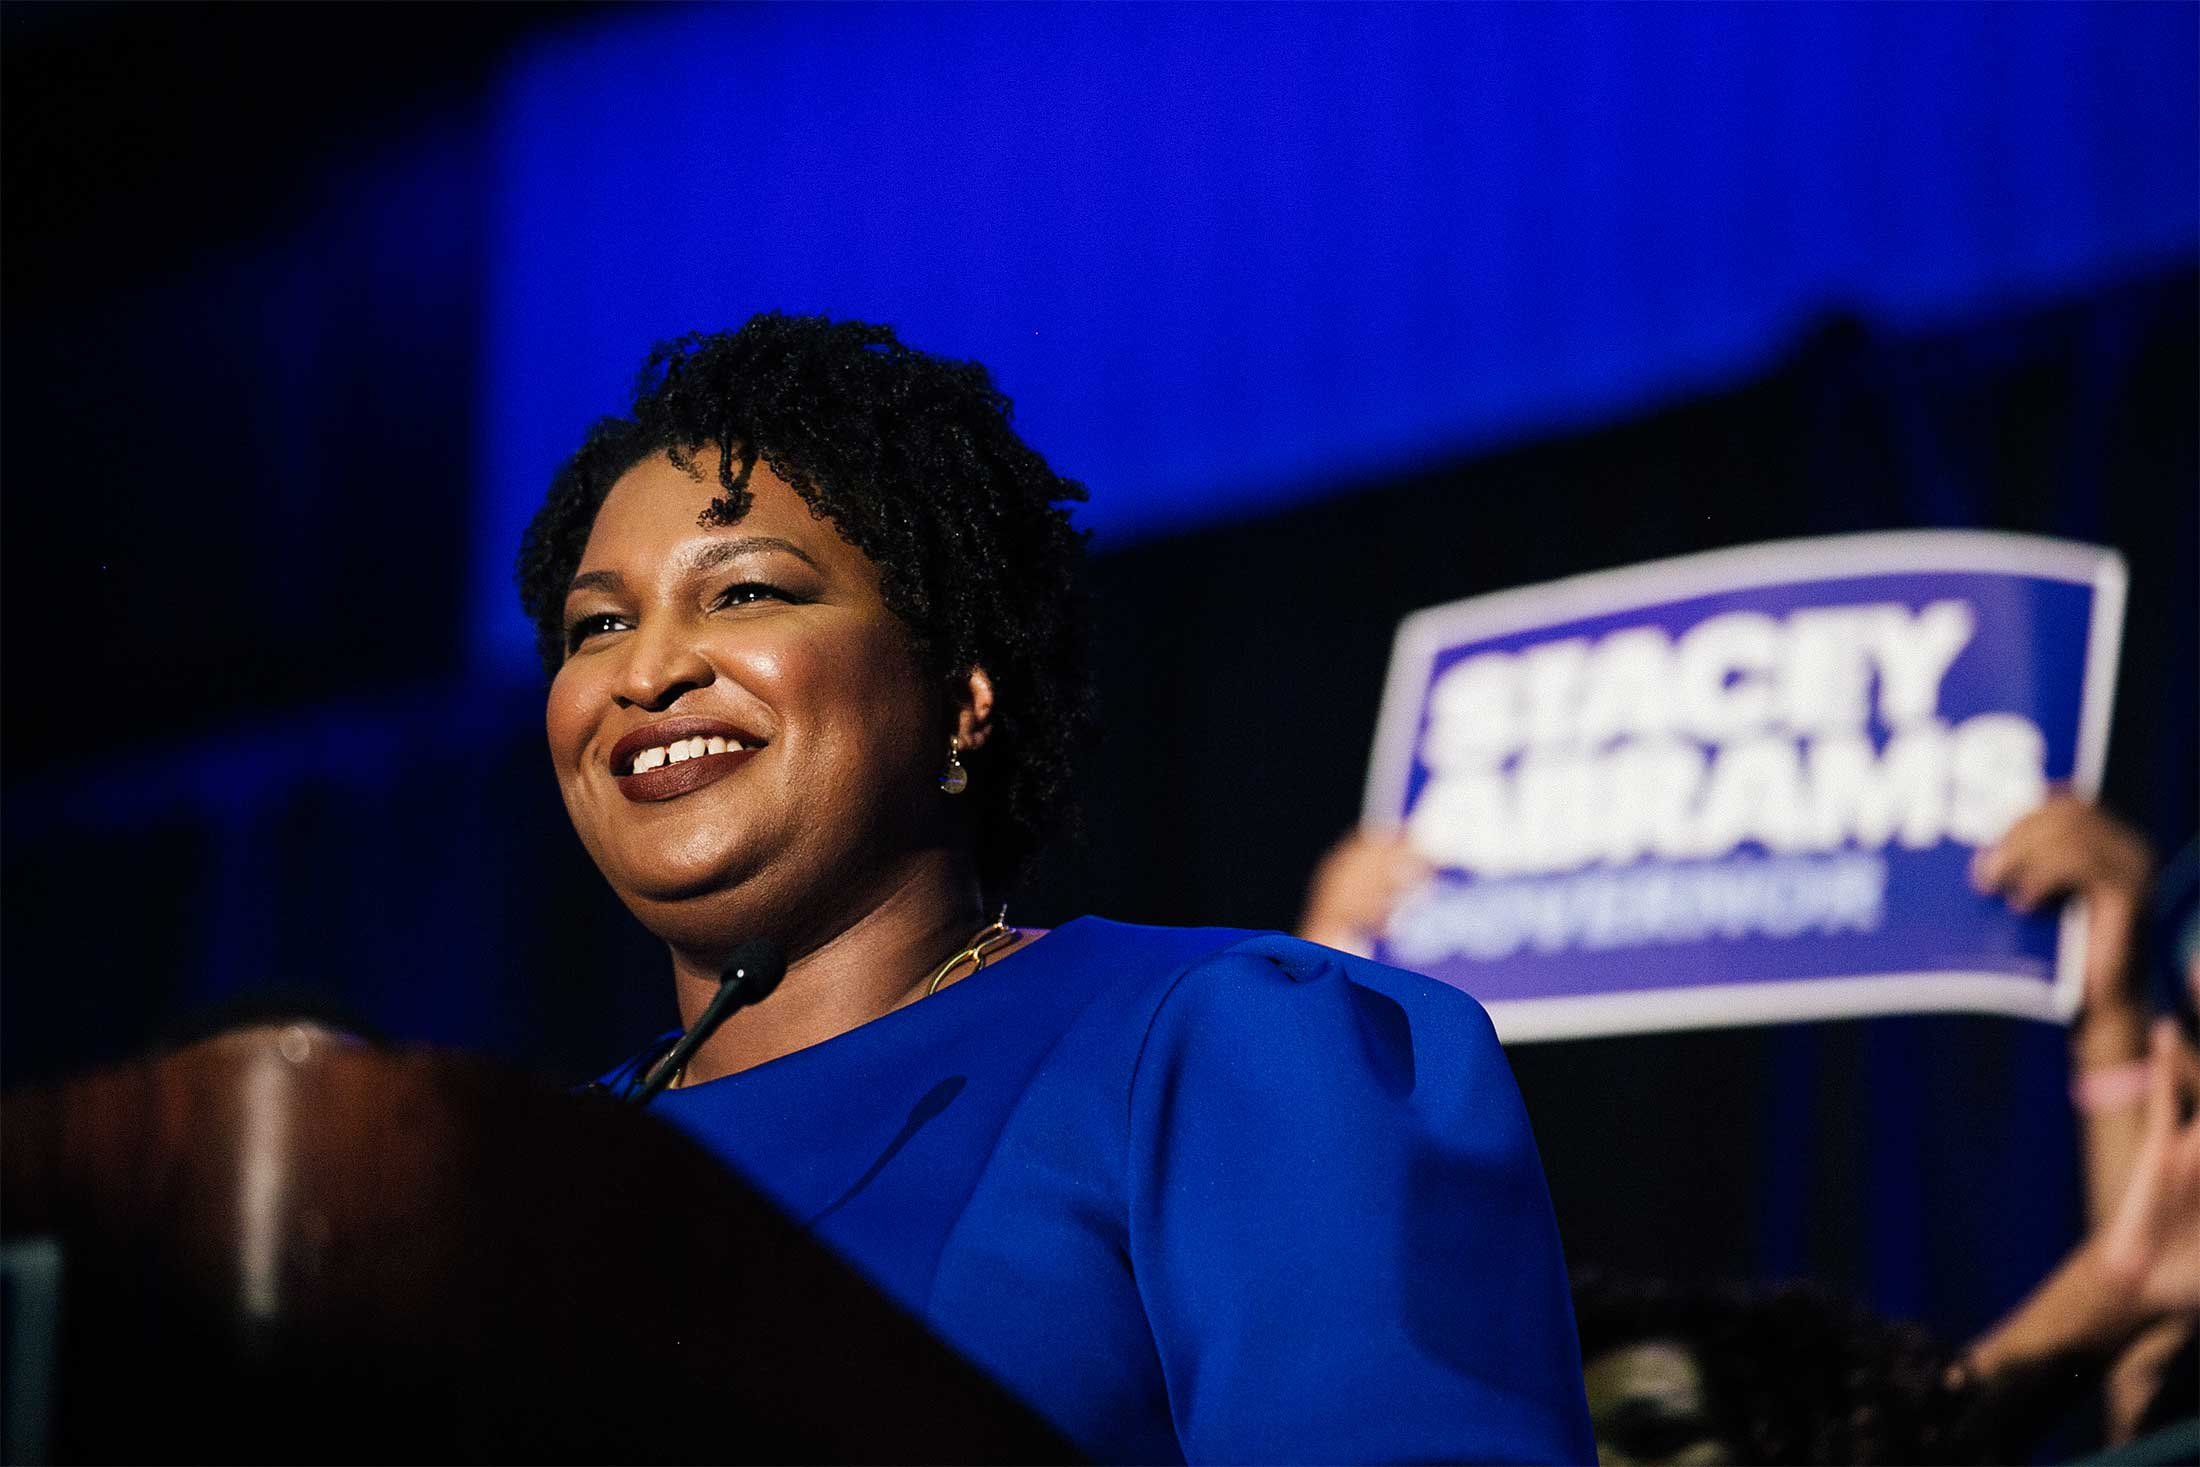 Stacey Abrams smiles from behind a podium.